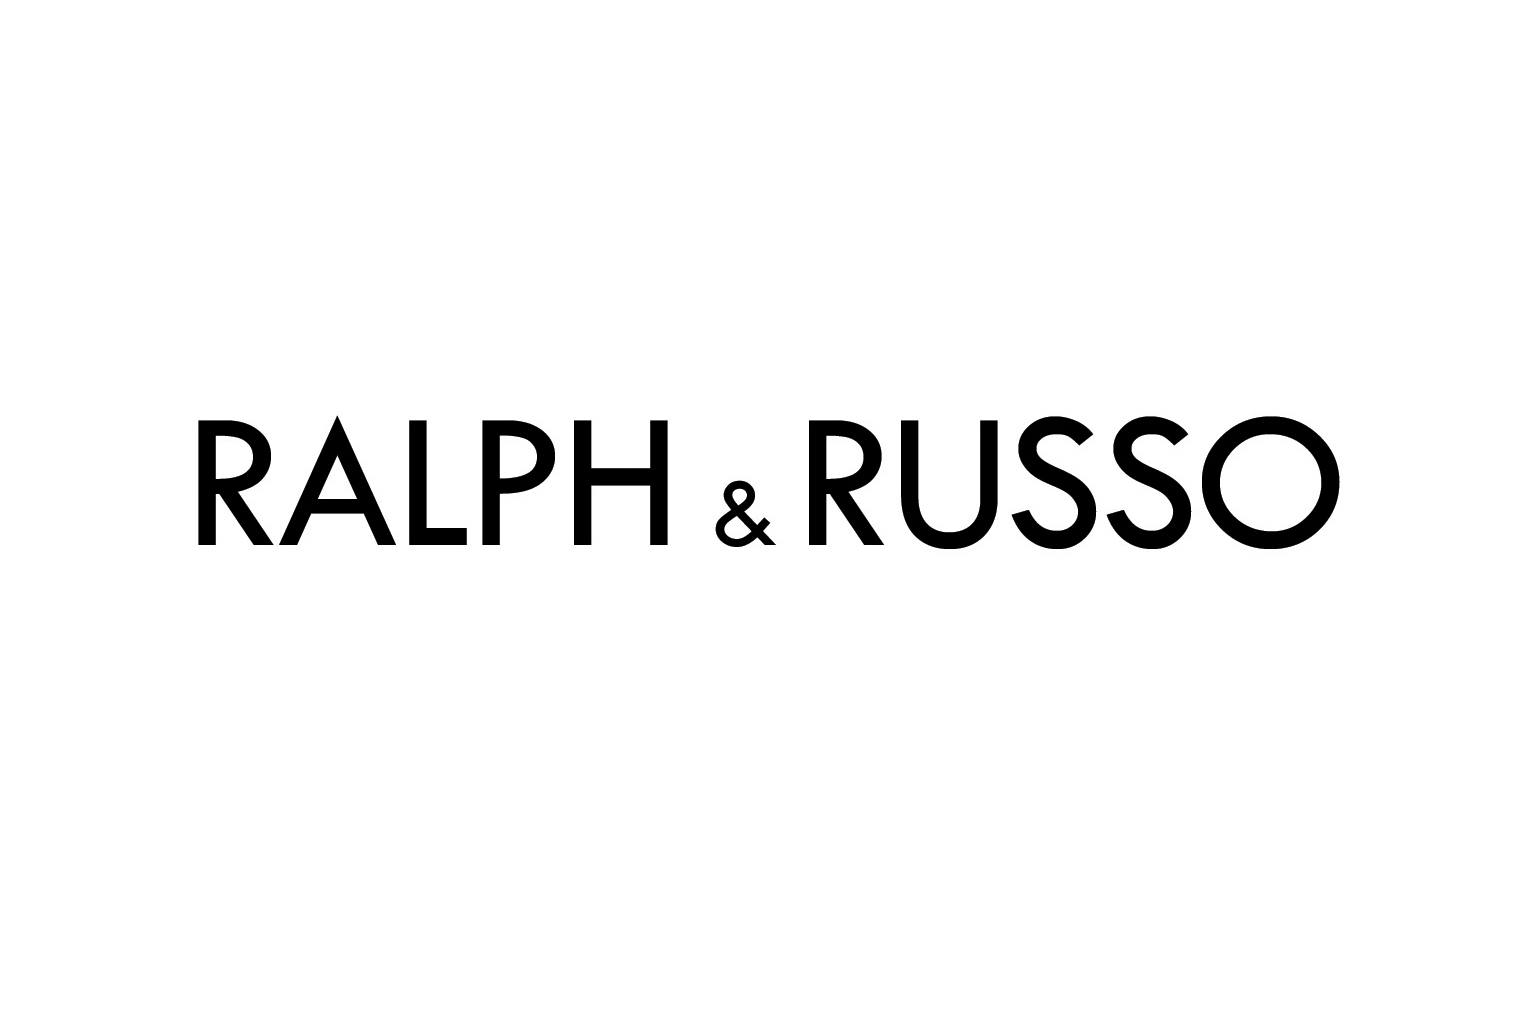 Ralph_and_russo_logo.jpg